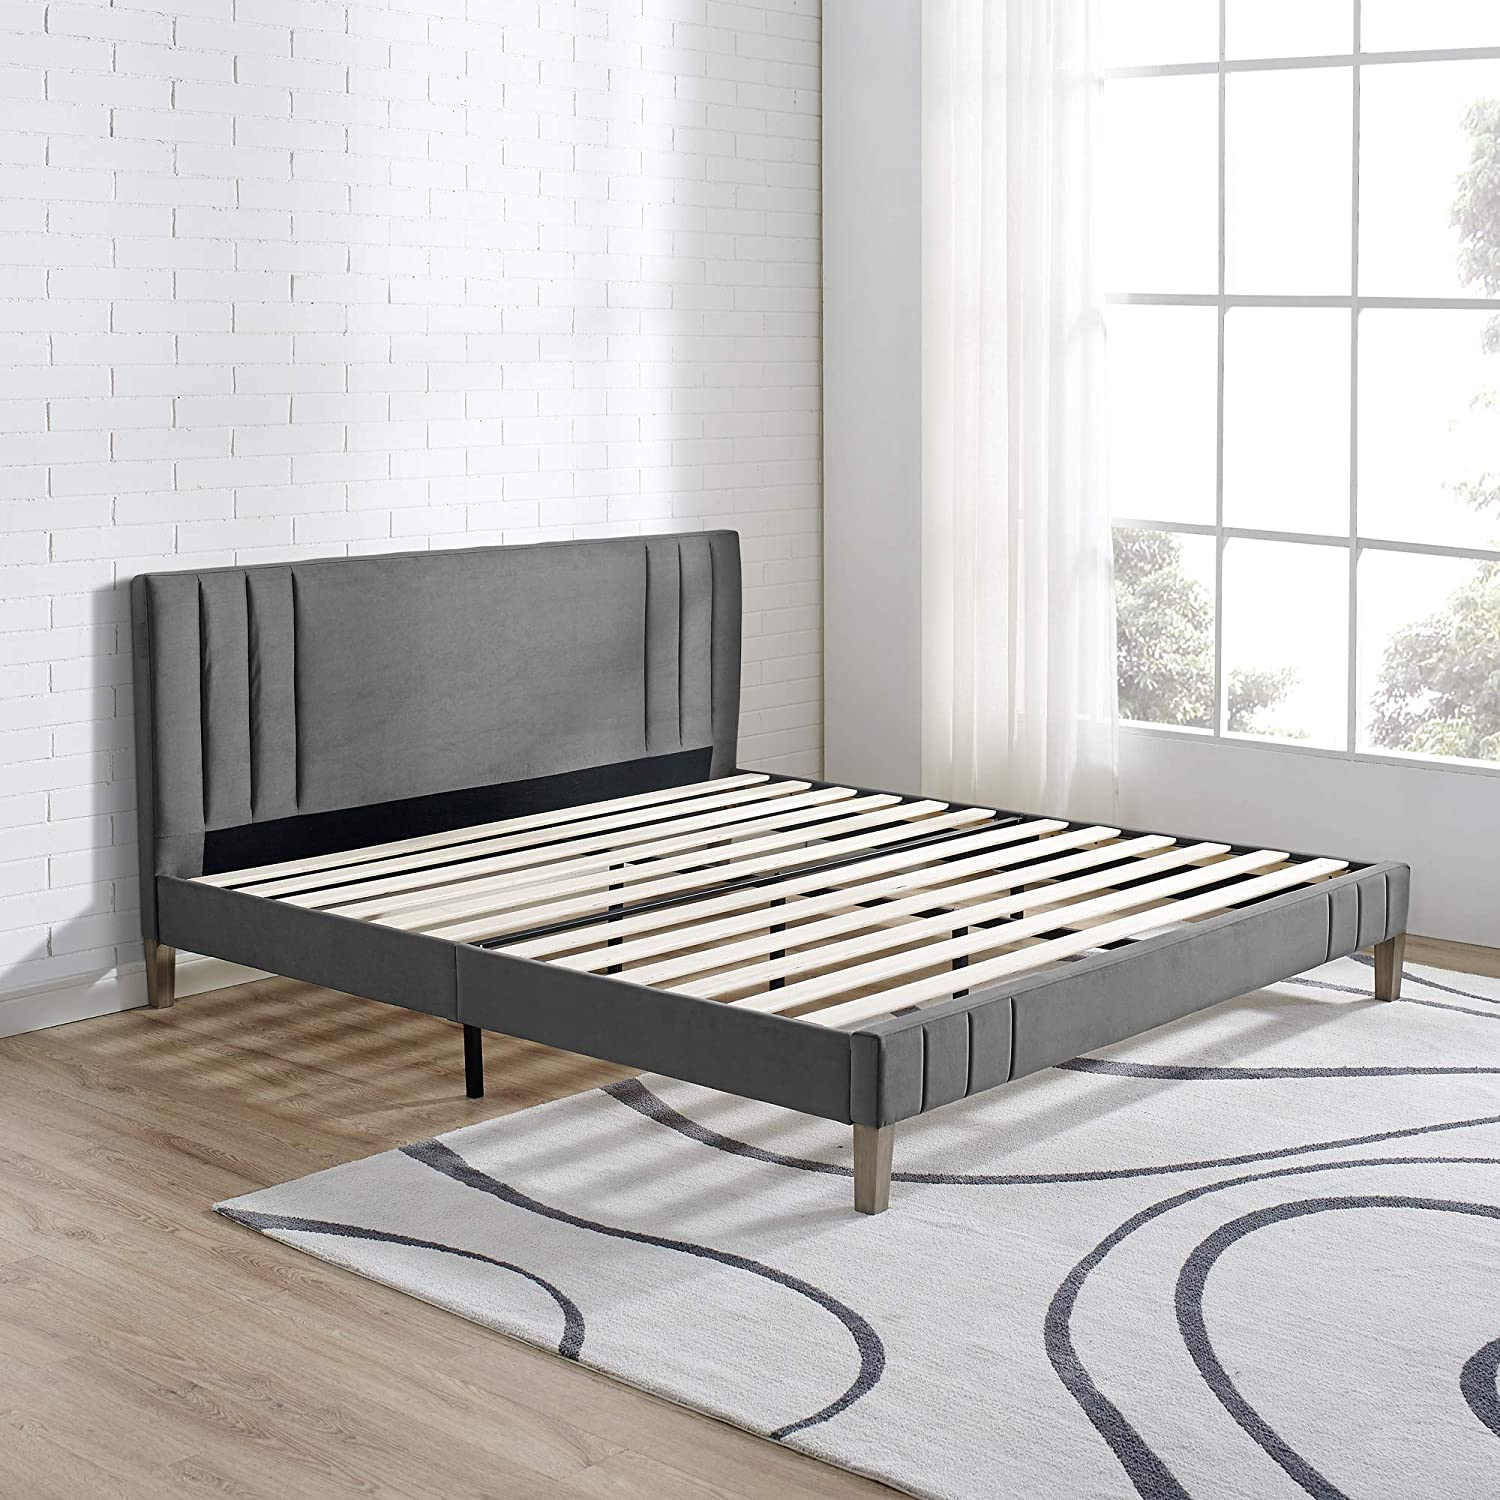 Classic Brands DeCoro Chicago Channel Tufted Upholstered Platform Bed Headboard and Wood Frame with Wood Slat Support, King, Antonio Mid Night